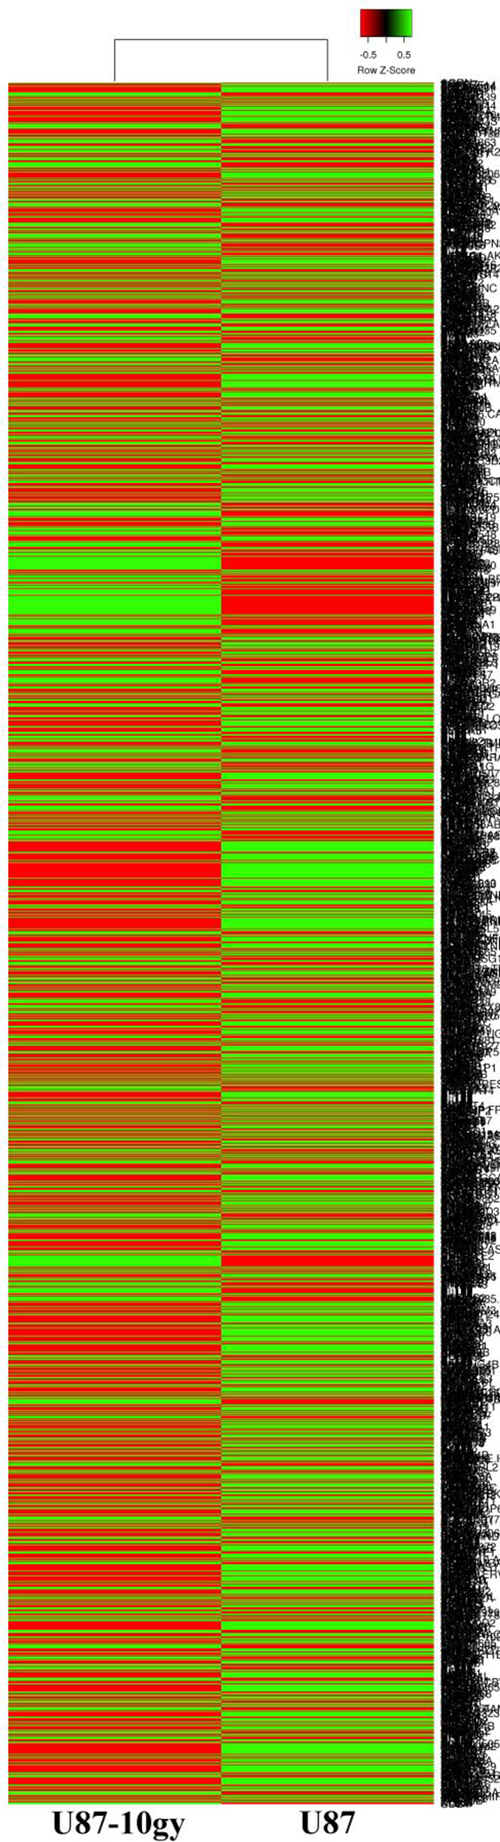 Clustered heat map of RNA-seq transcriptomes of U87 and U87-10gy cells.